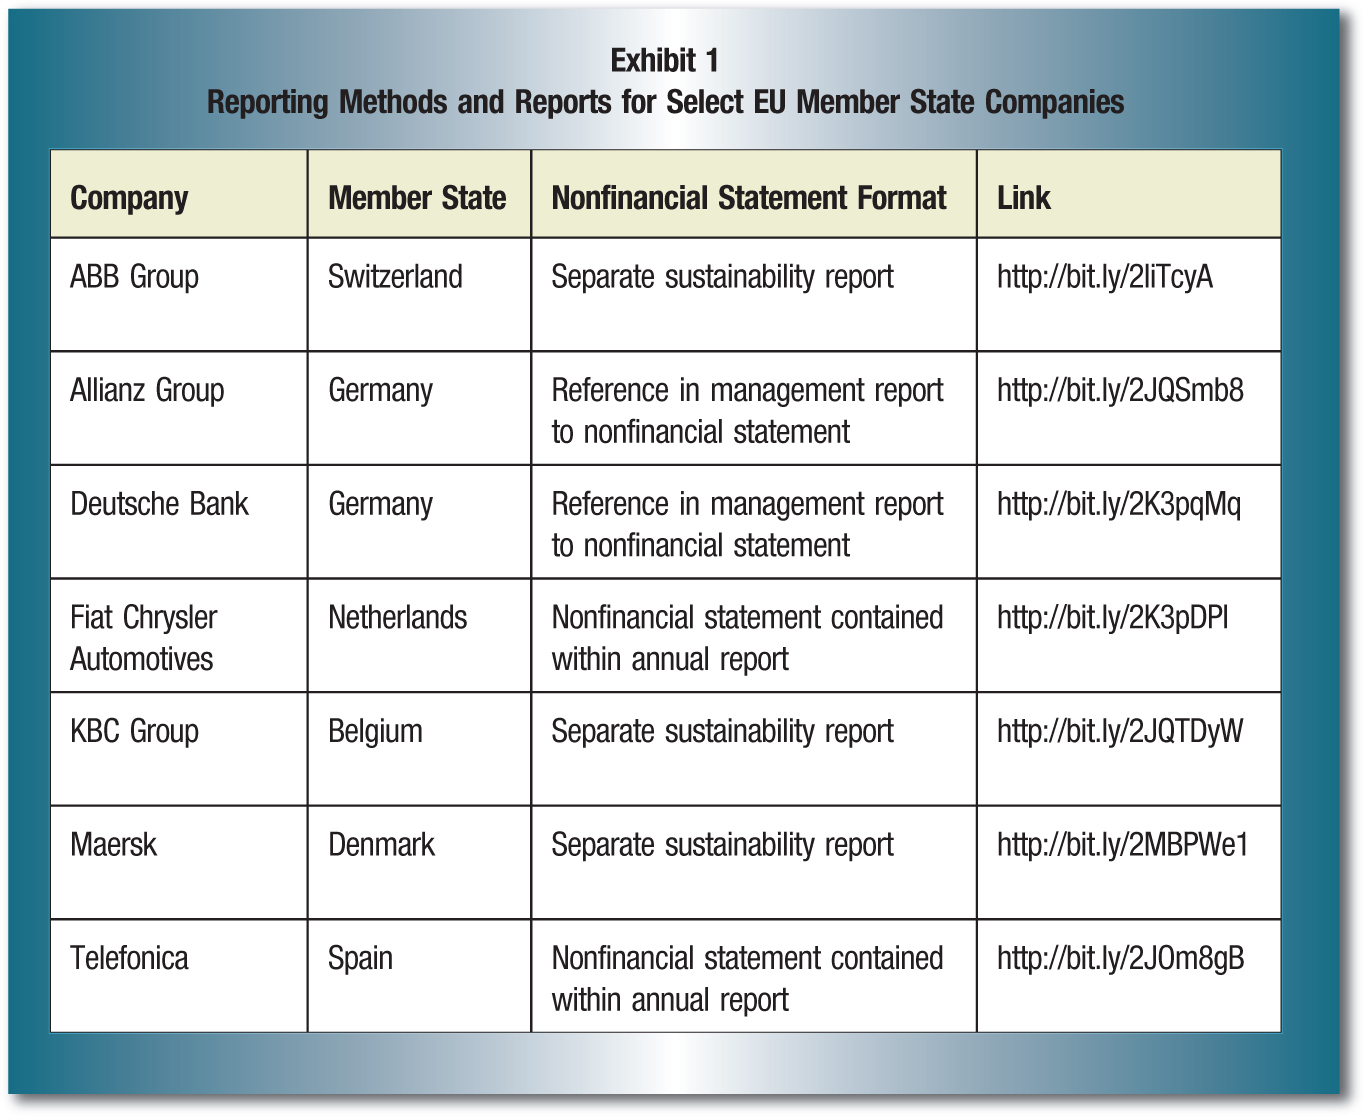 Company; Member State; Nonfinancial Statement Format; Link ABB Group; Switzerland; Separate sustainability report; http://bit.ly/2liTcyA Allianz Group; Germany; Reference in management report to nonfinancial statement; http://bit.ly/2JQSmb8 Deutsche Bank; Germany; Reference in management report to nonfinancial statement; http://bit.ly/2K3pqMq Fiat Chrysler Automotives; Netherlands; Nonfinancial statement contained within annual report; http://bit.ly/2K3pDPI KBC Group; Belgium; Separate sustainability report; http://bit.ly/2JQTDyW Maersk; Denmark; Separate sustainability report; http://bit.ly/2MBPWe1 Telefonica; Spain; Nonfinancial statement contained within annual report; http://bit.ly/2JOm8gB